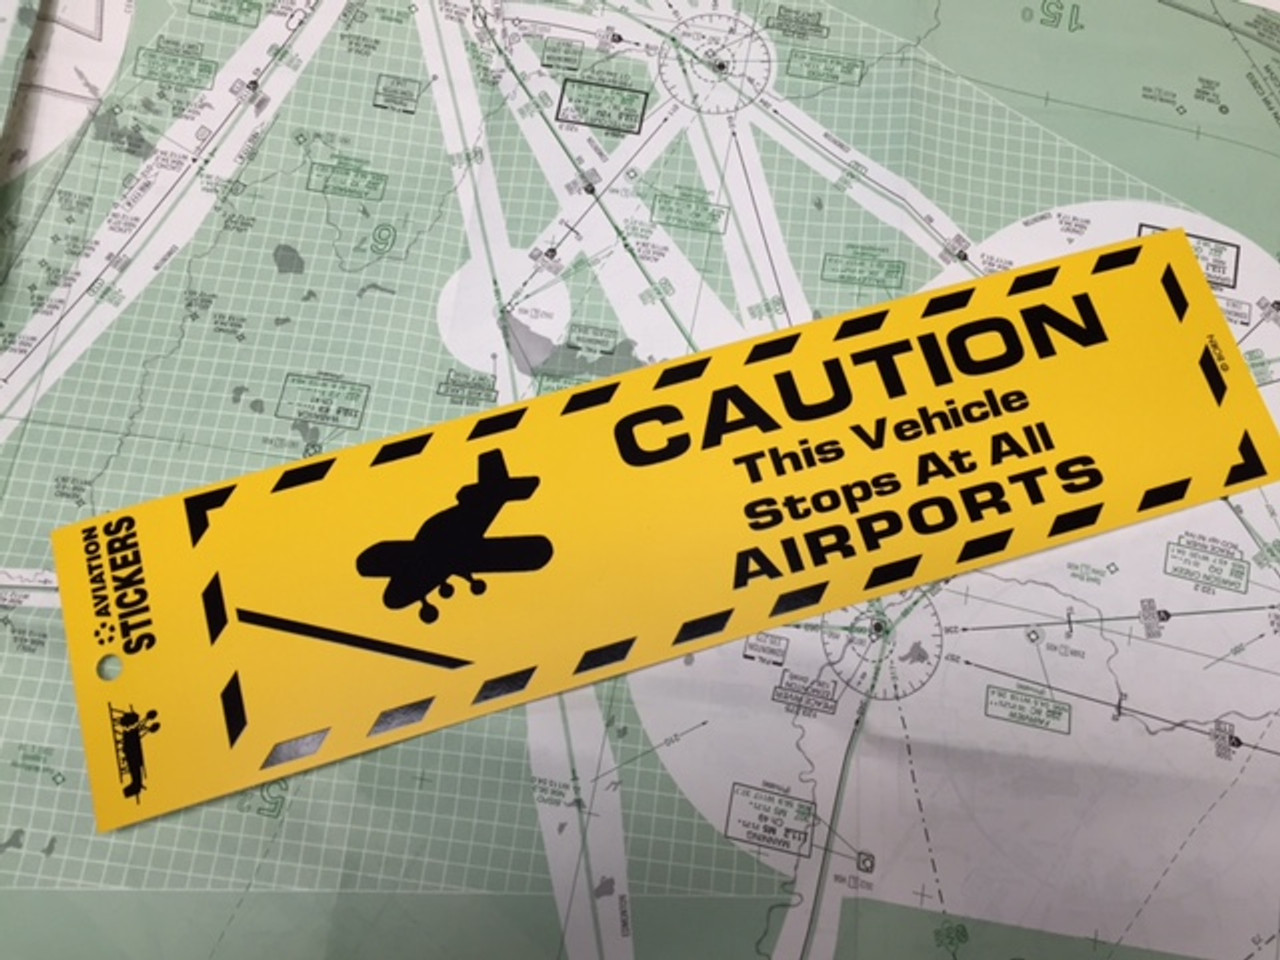 Caution this Vehicle Stops at all Airports Sticker